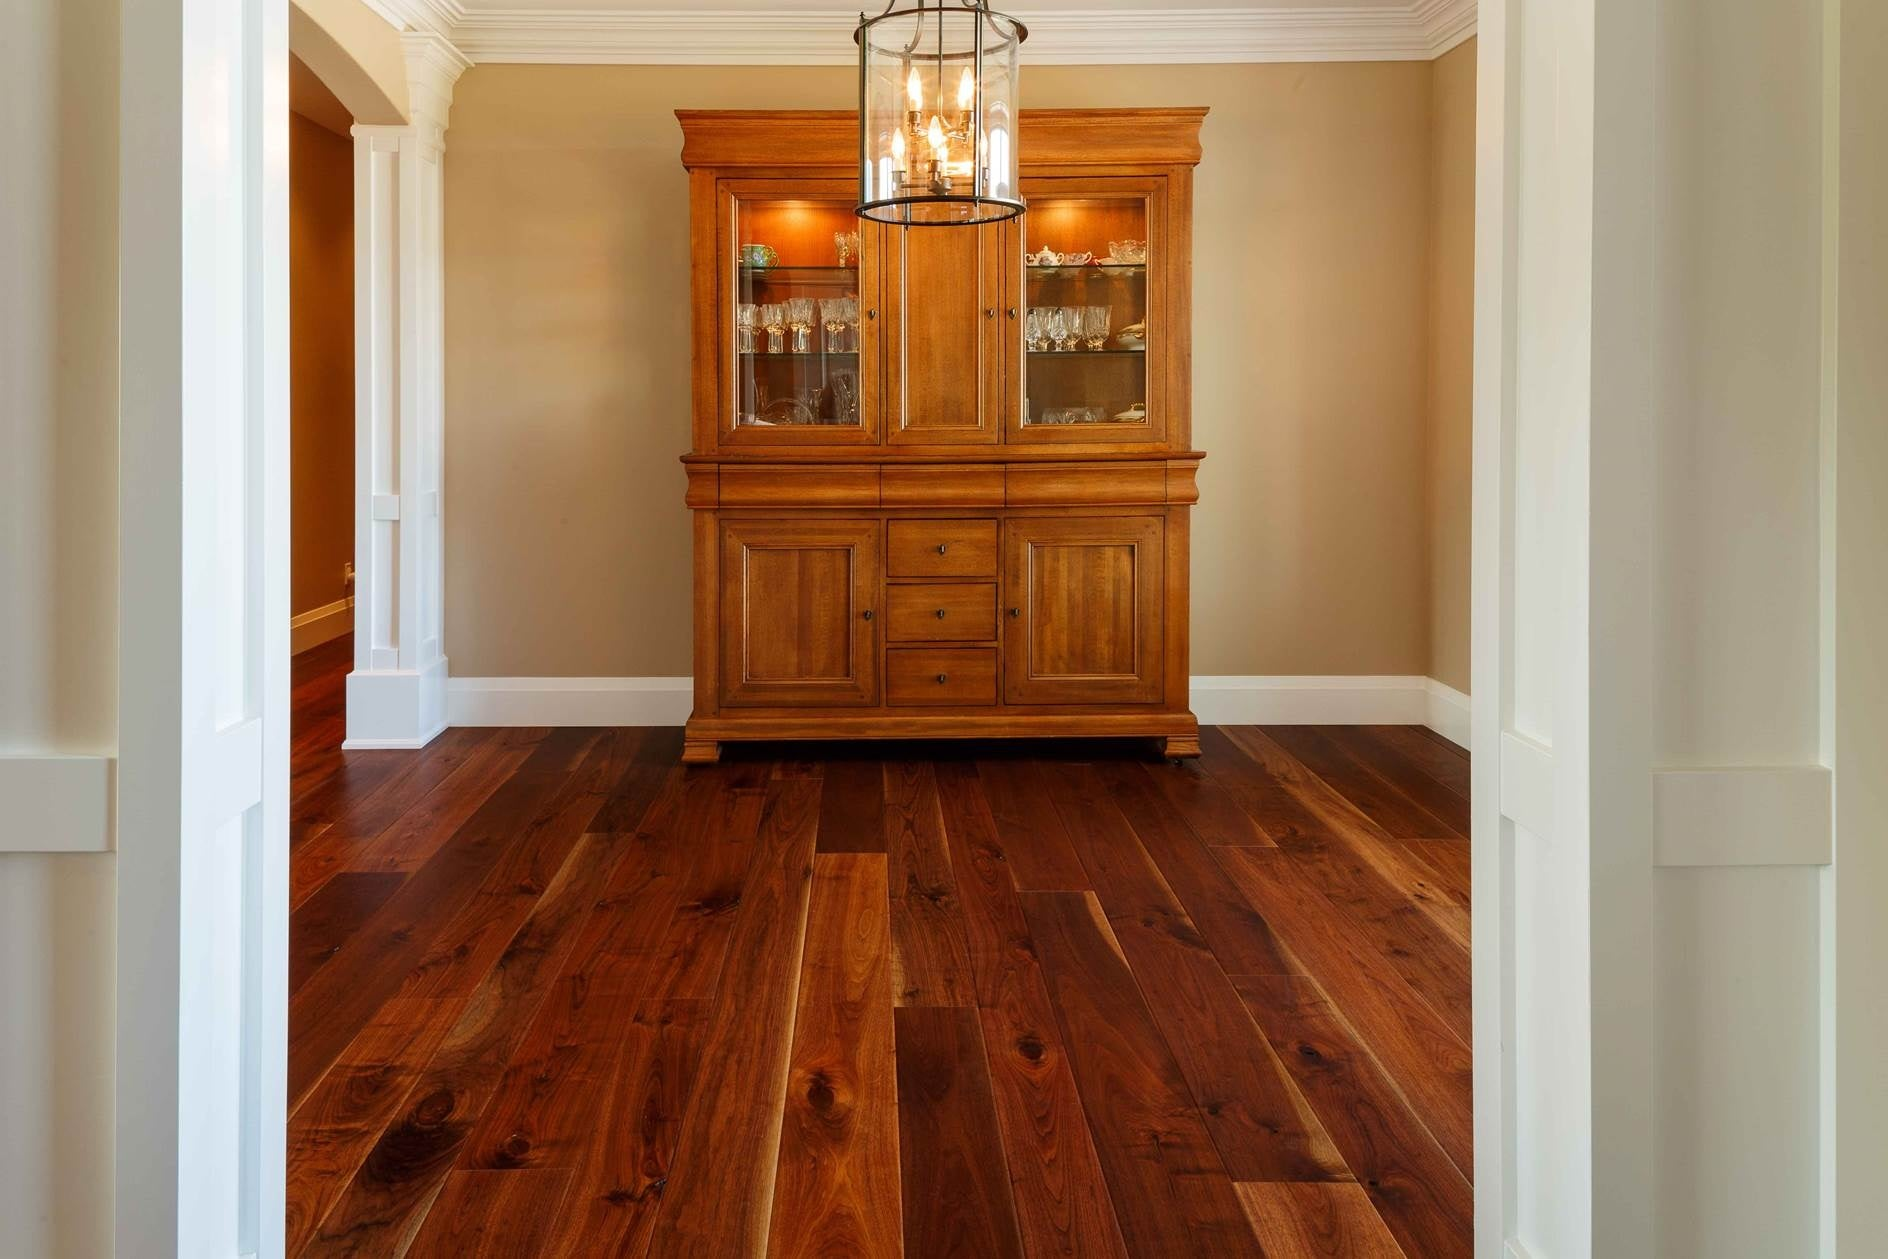 walnut wood flooring with a transition